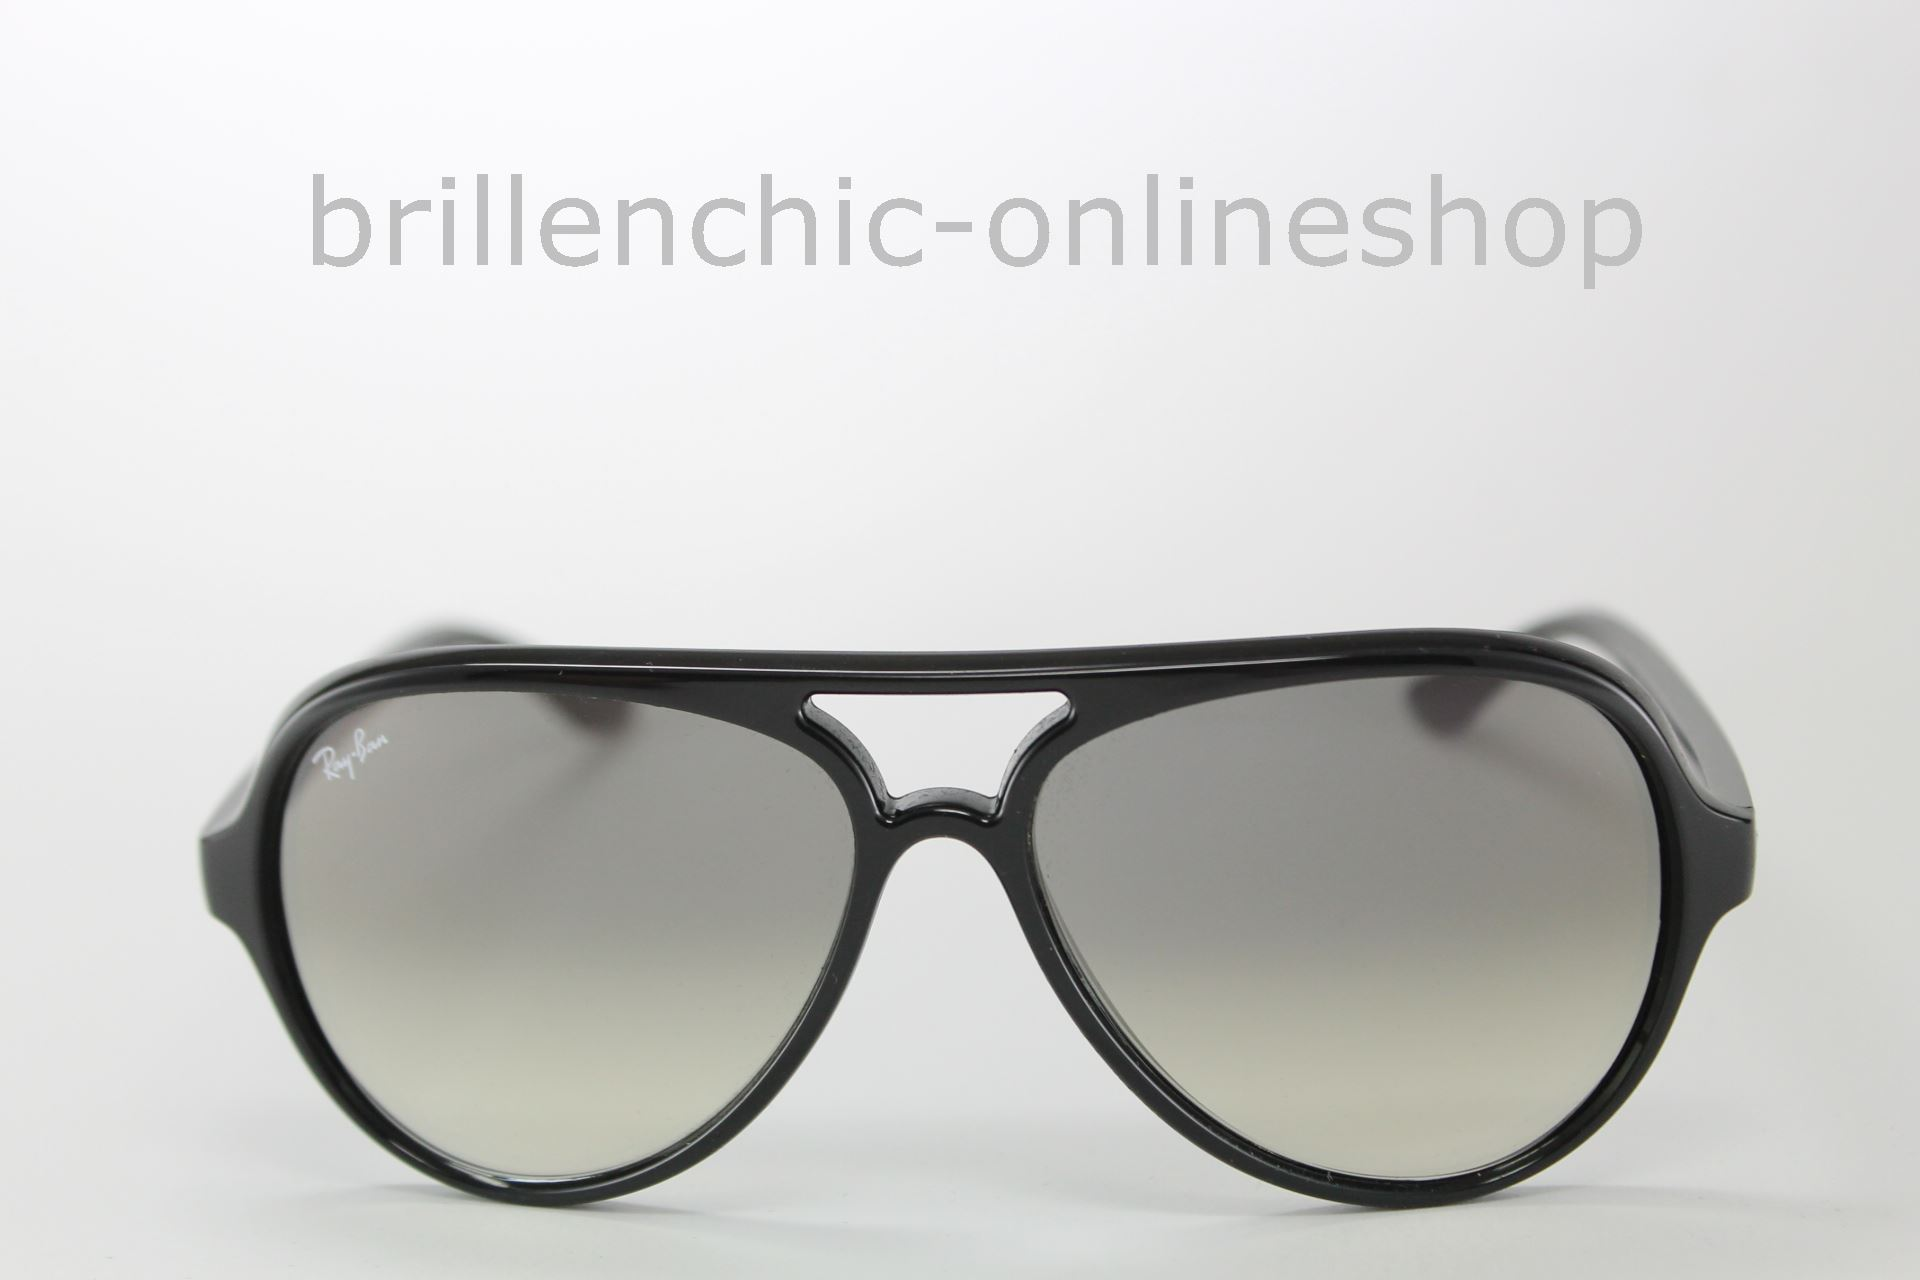 Brillenchic-onlineshop in Berlin - Ray Ban CATS 5000 RB 4125 601 32 cffa2bb2d4